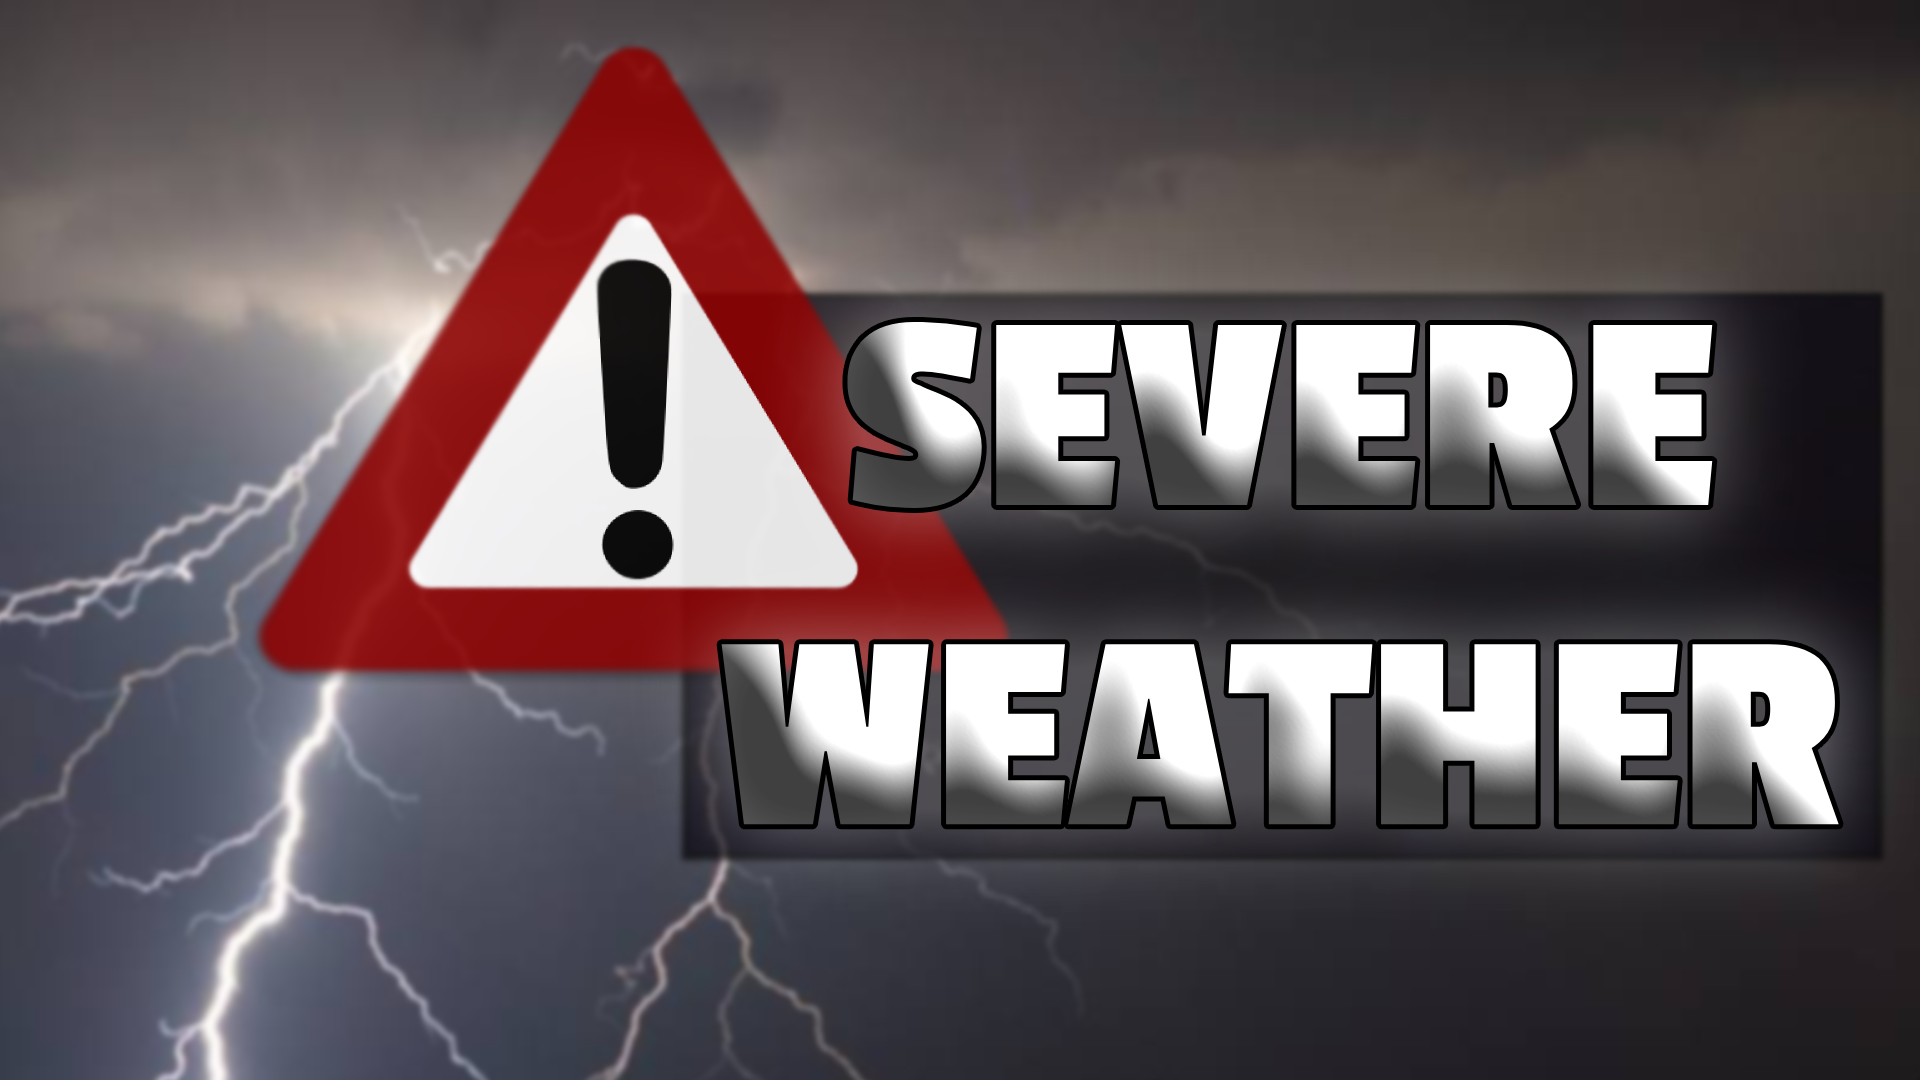 SEVERE WEATHER_1552427397912.png.jpg